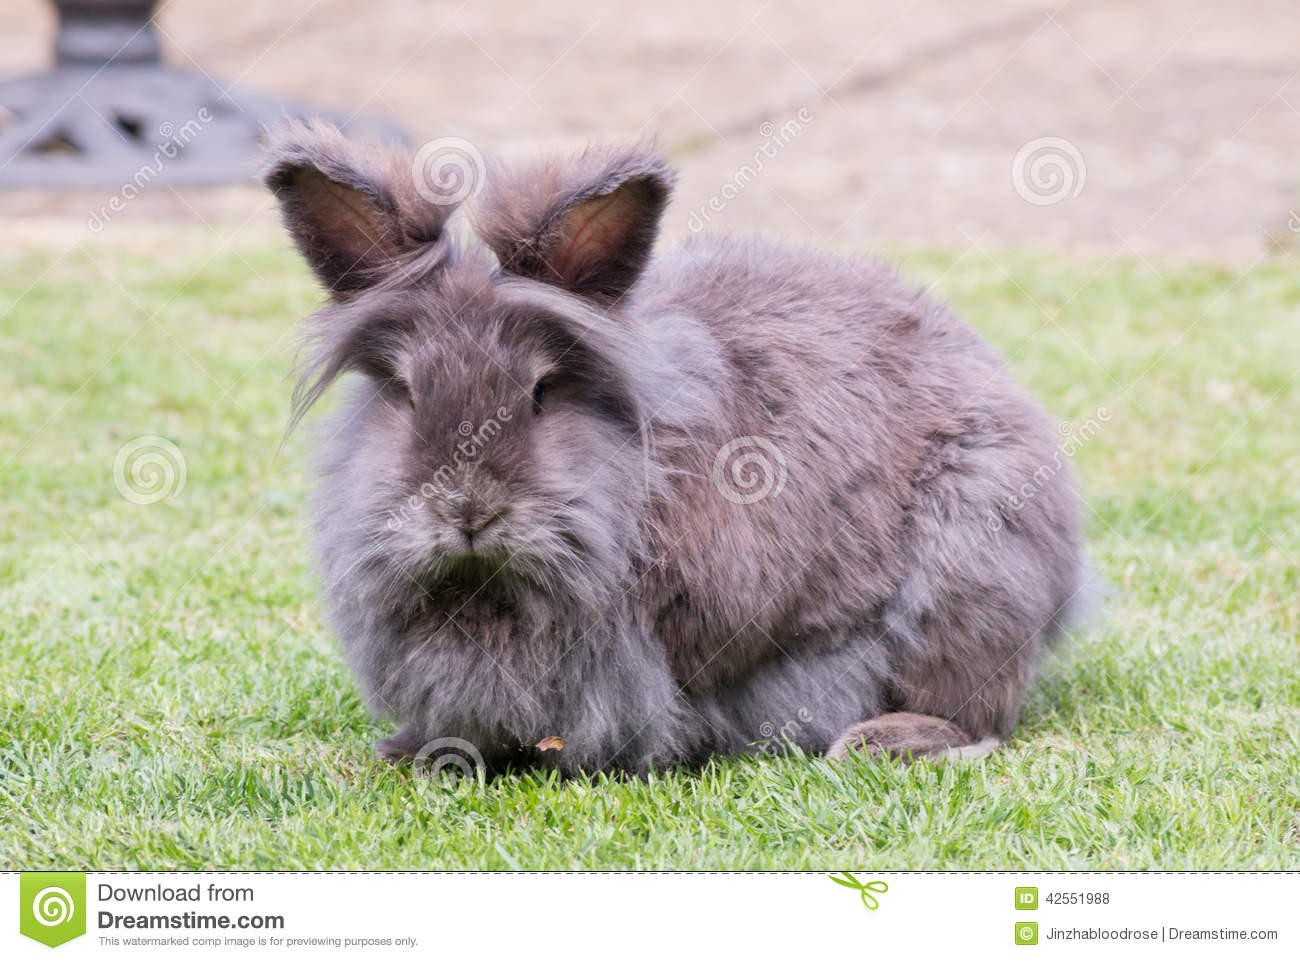 Lionhead rabbit stock photo. Image of animal, animals ...